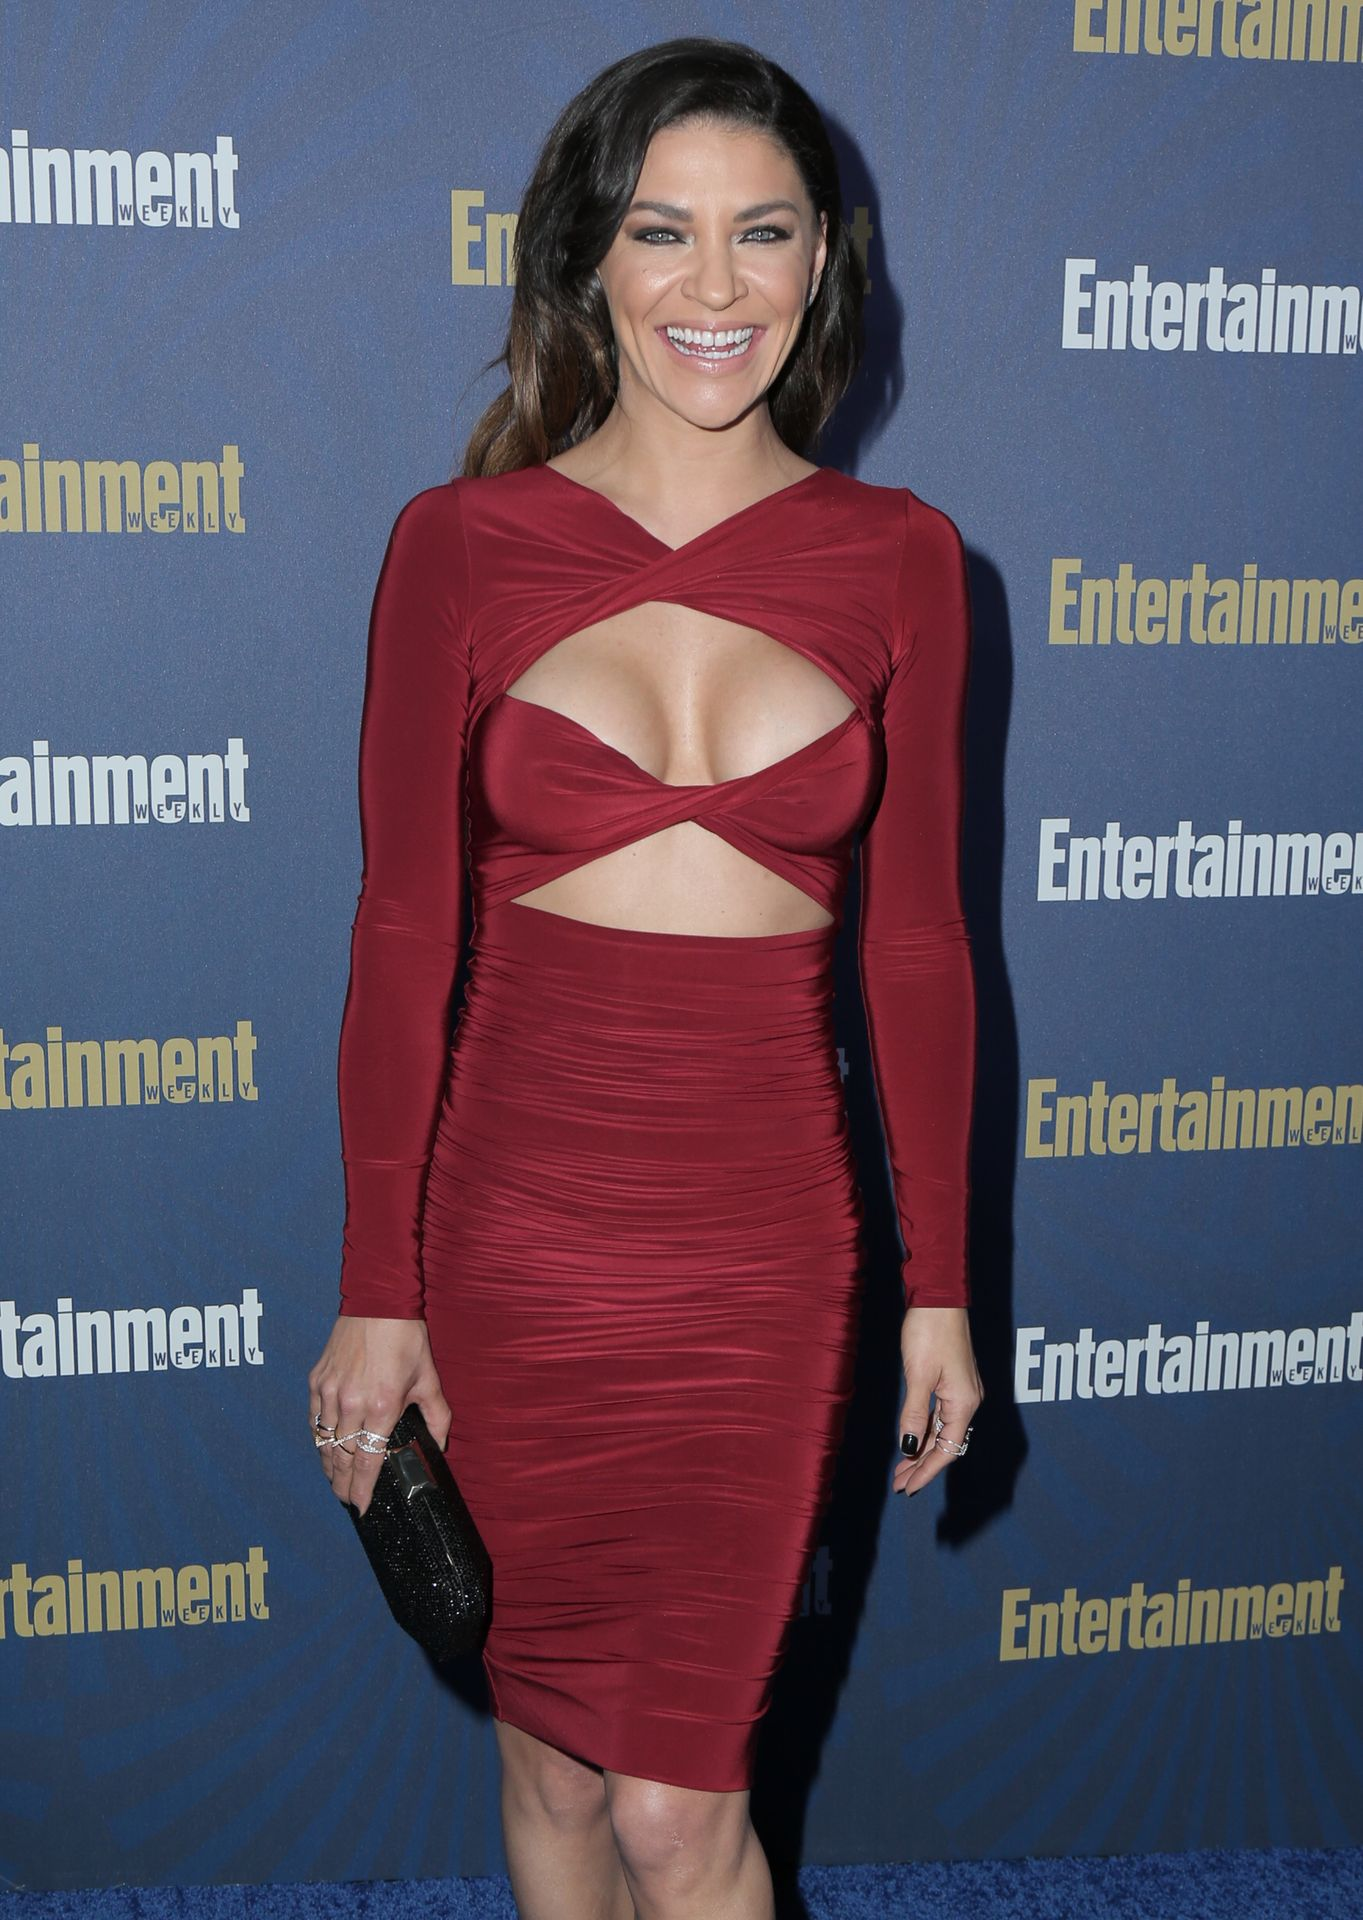 Jessica Szohr Shows Her Cleavage At The Entertainment Weekly Pre Sag Awards Celebration 0018